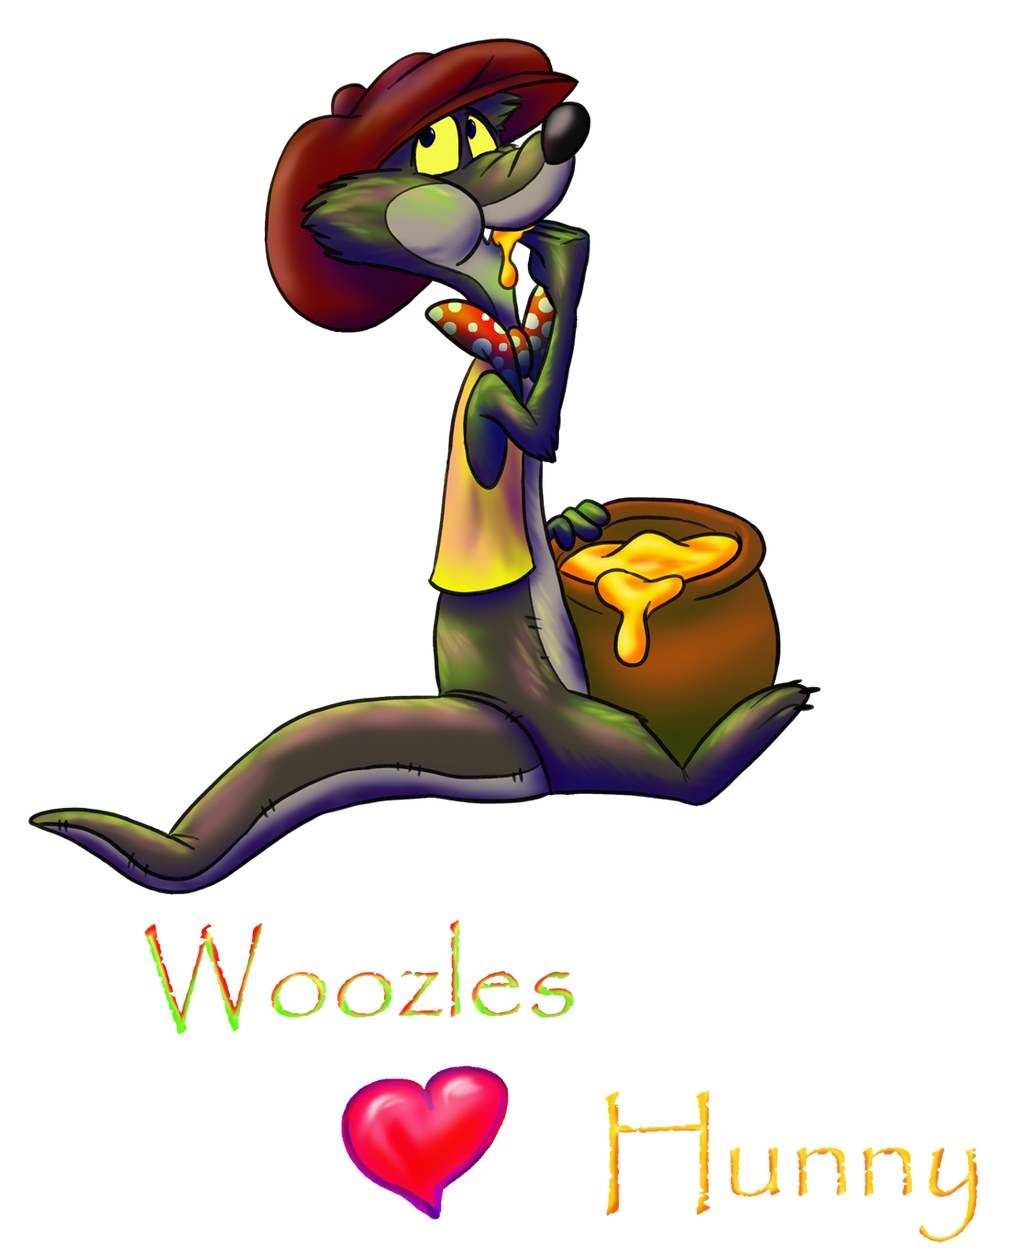 Woozles Love Hunny by StanHoneyThief